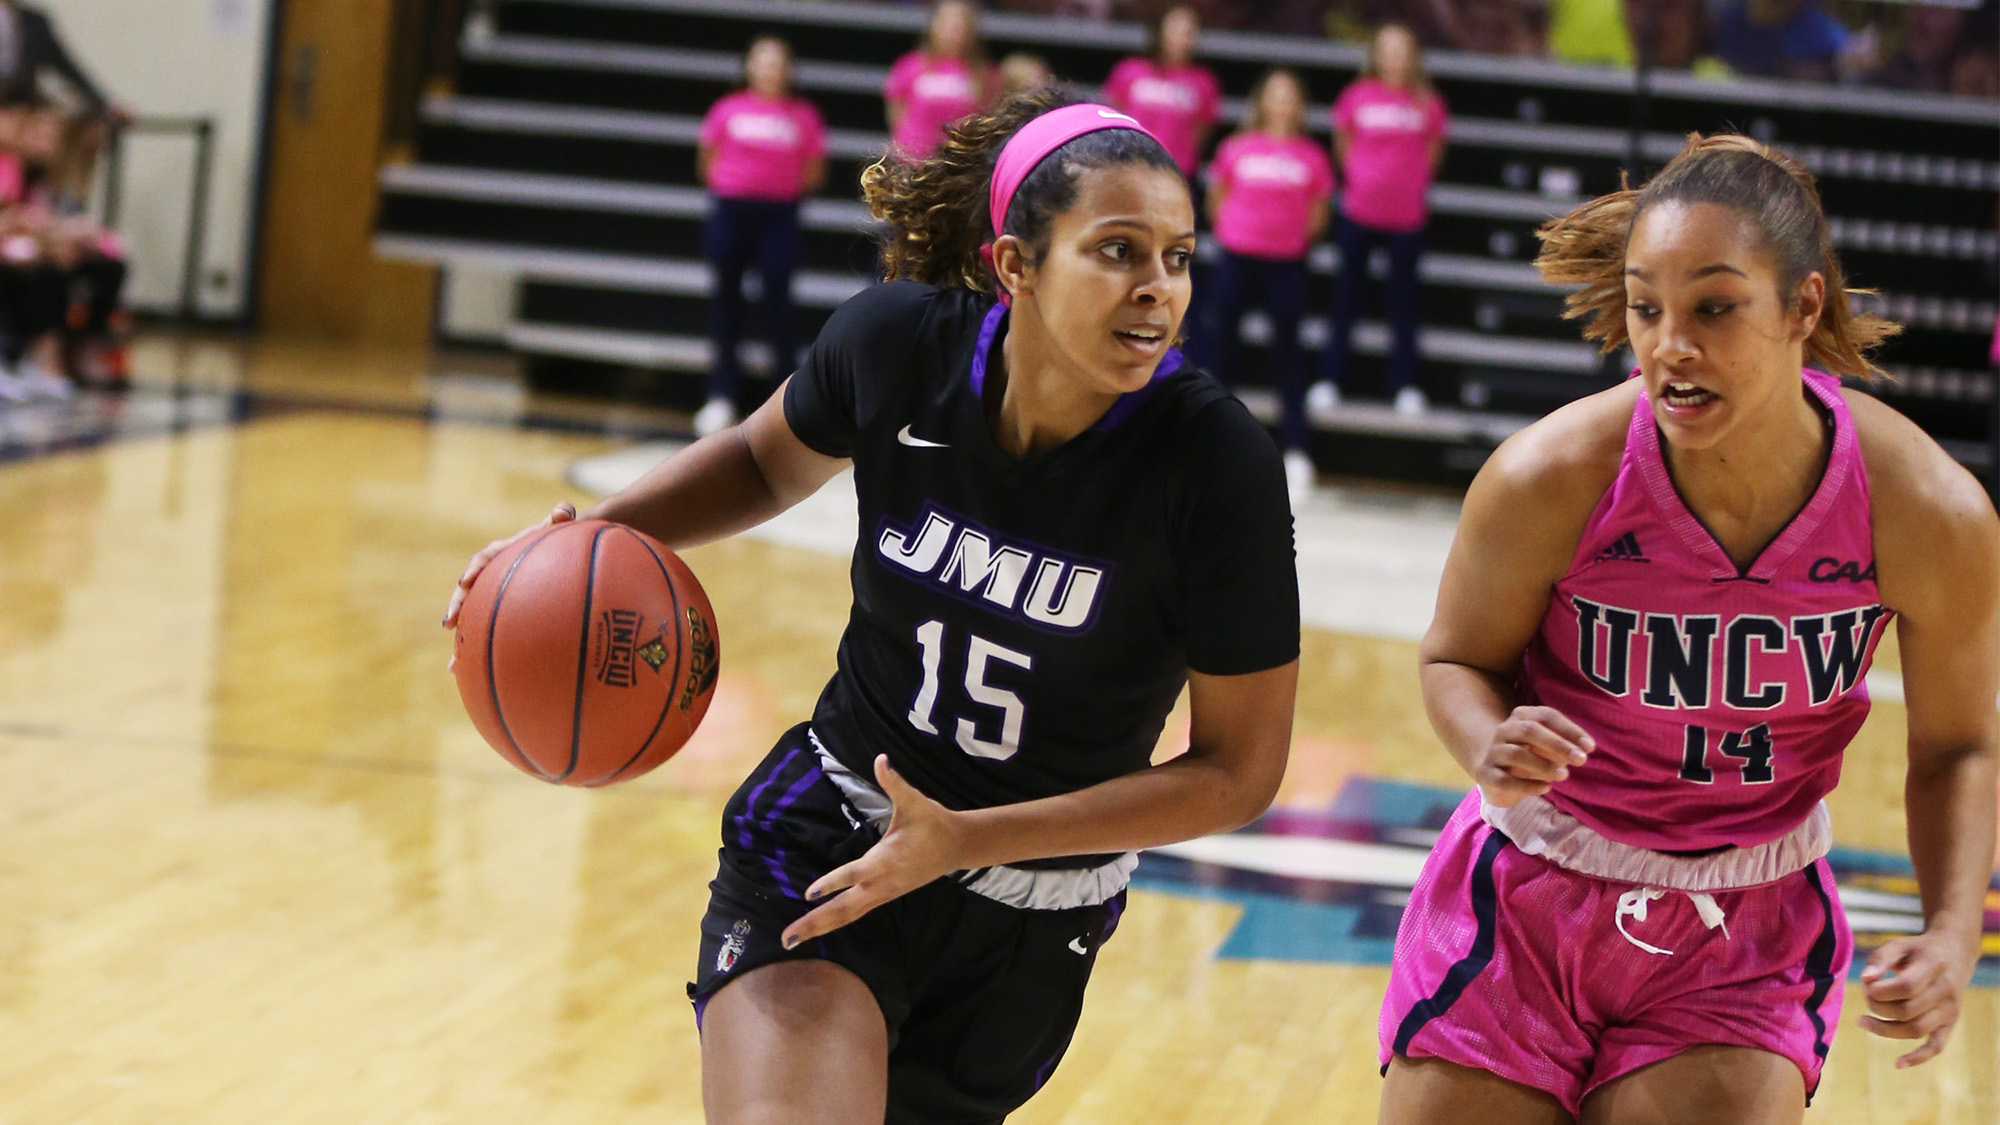 Women's Basketball: JMU Stifles UNCW for 63-48 Victory, Stretches Win Streak to Eight)